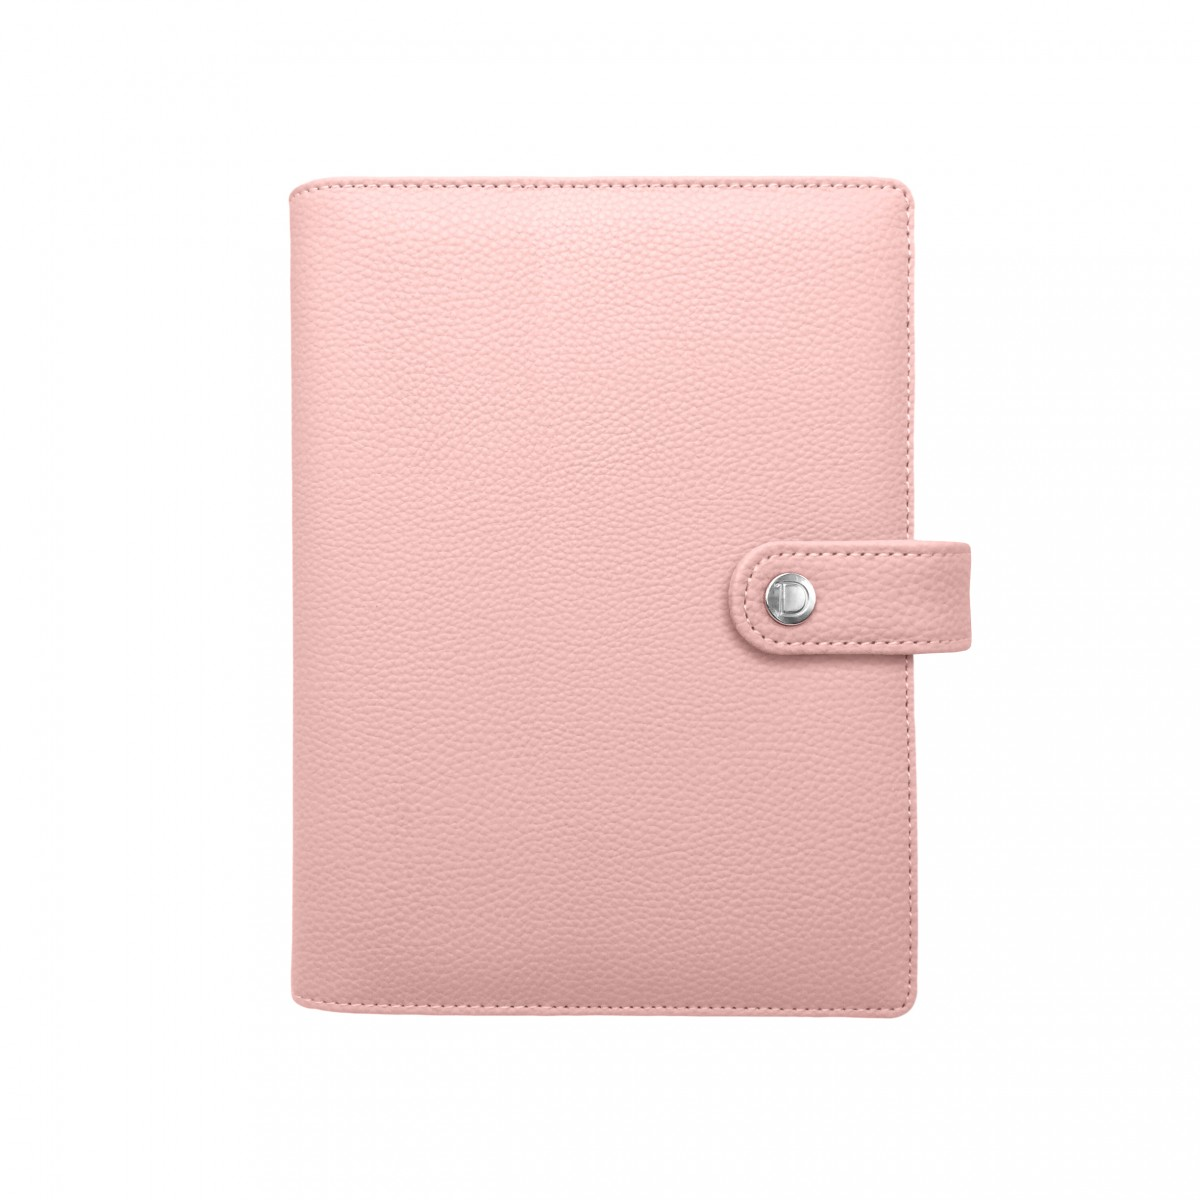 DISCAGENDA SERENE COVER PERSONAL PALE PINK